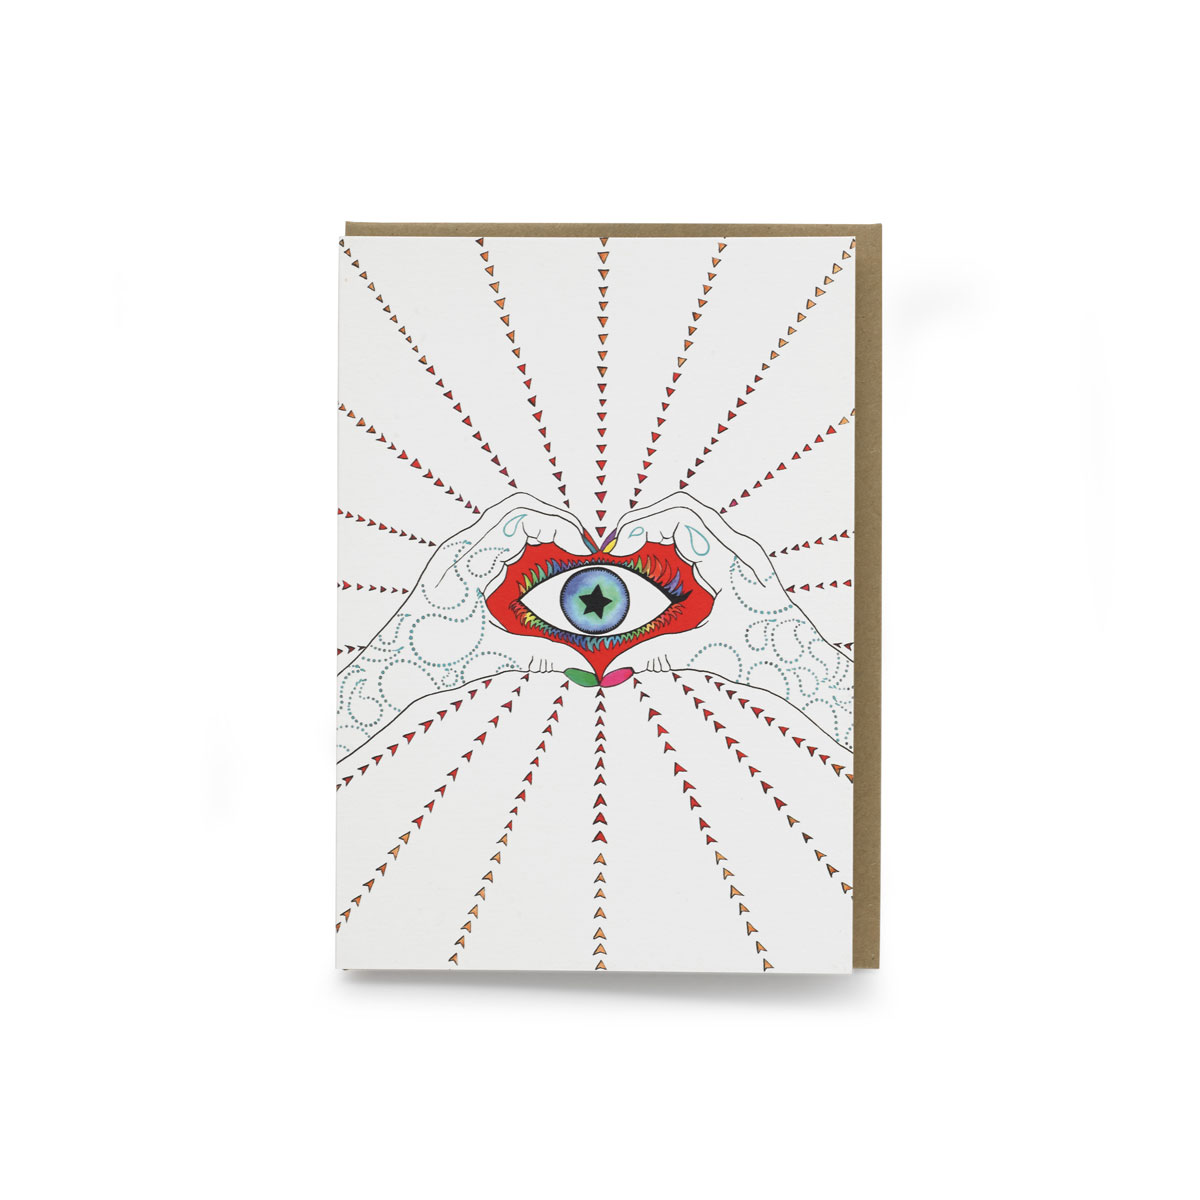 ALL SEEING EYE PRINTED ON 300 GSM PAPER